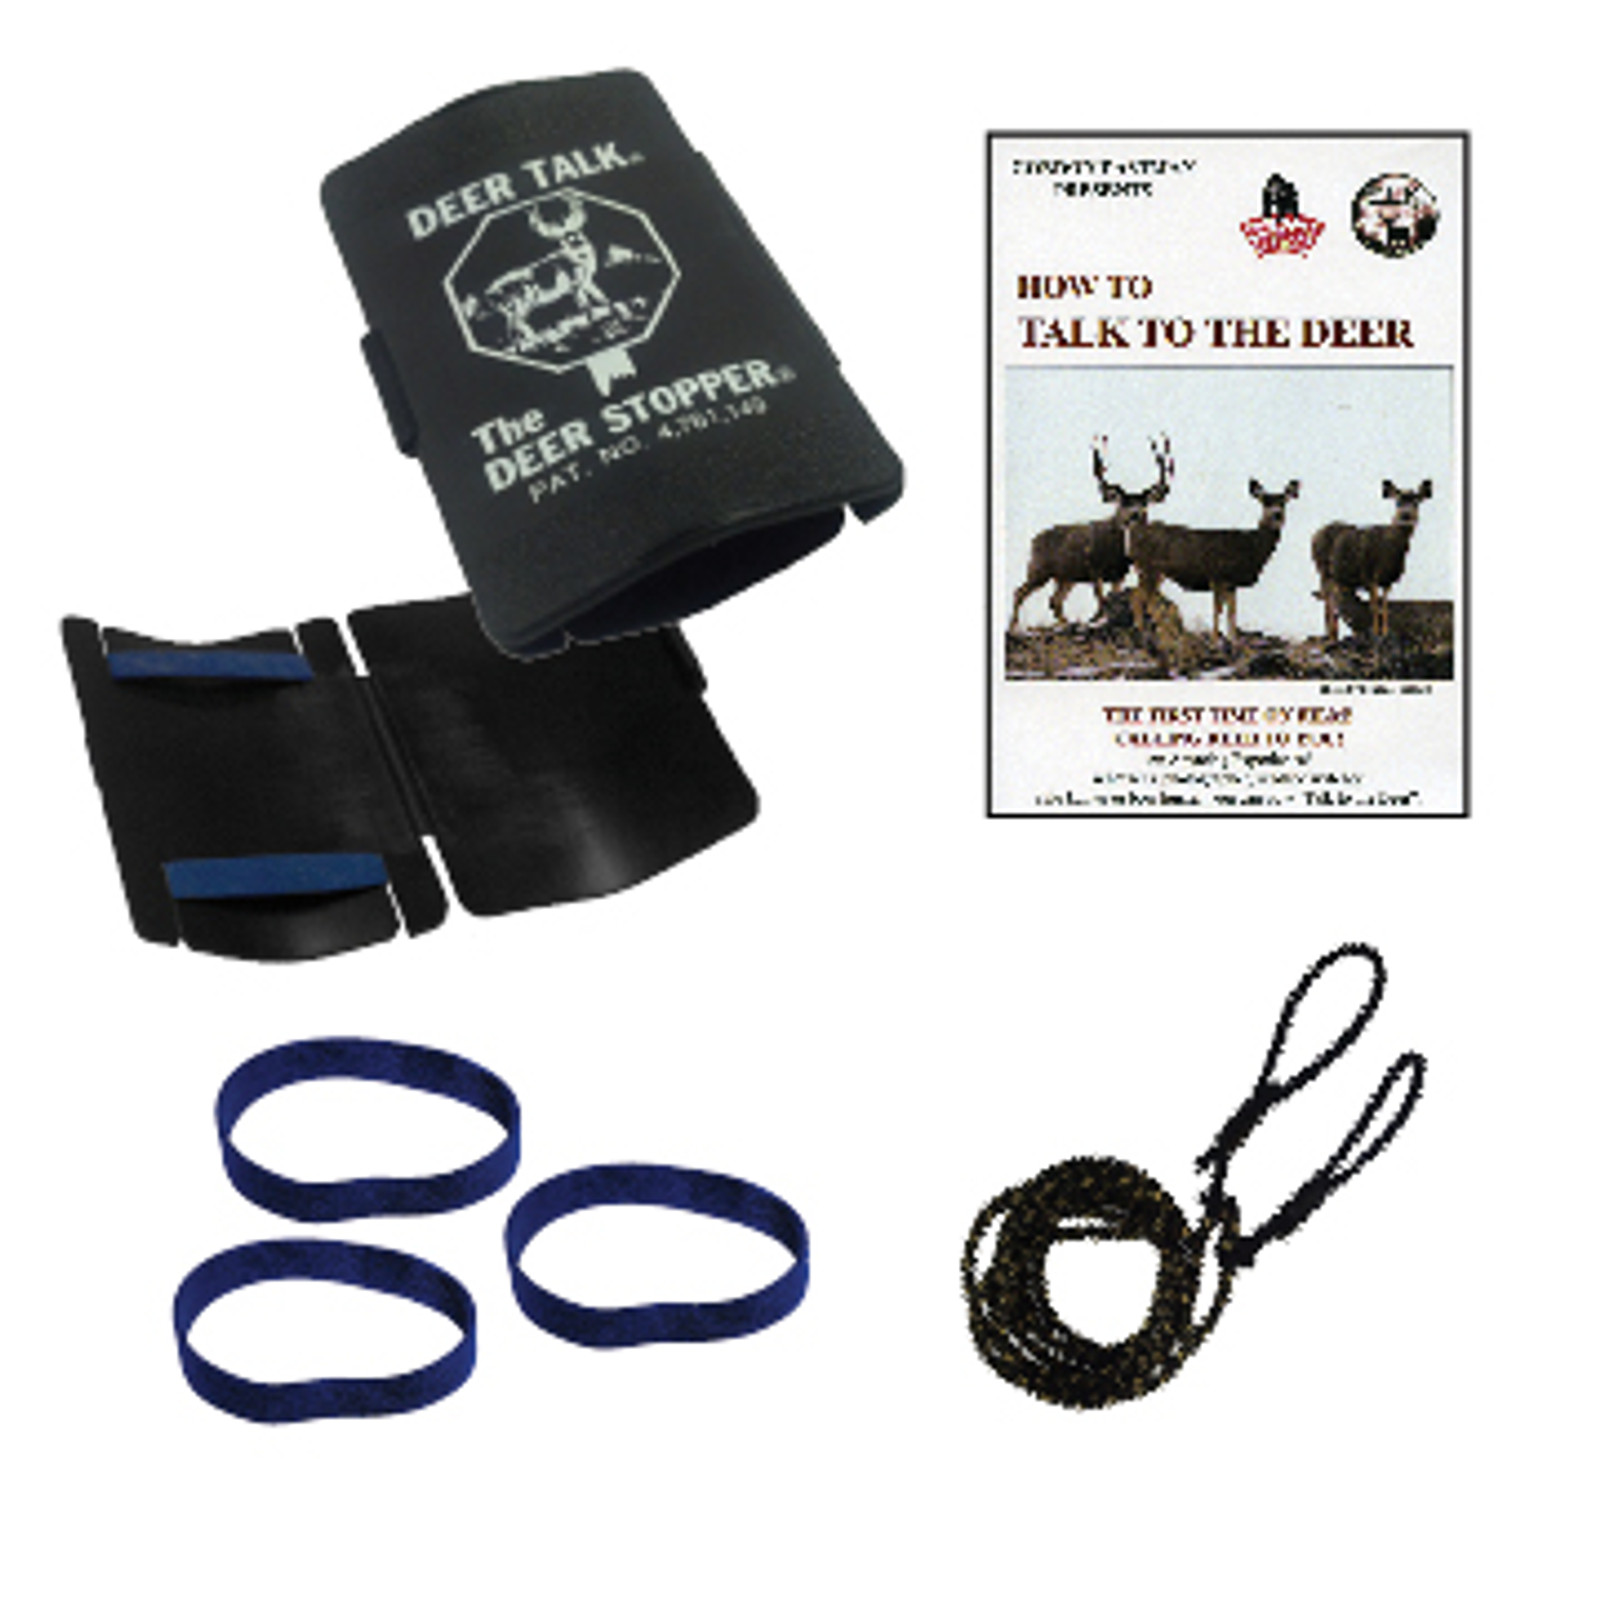 *DEER TALK W/ DVD PACKAGE